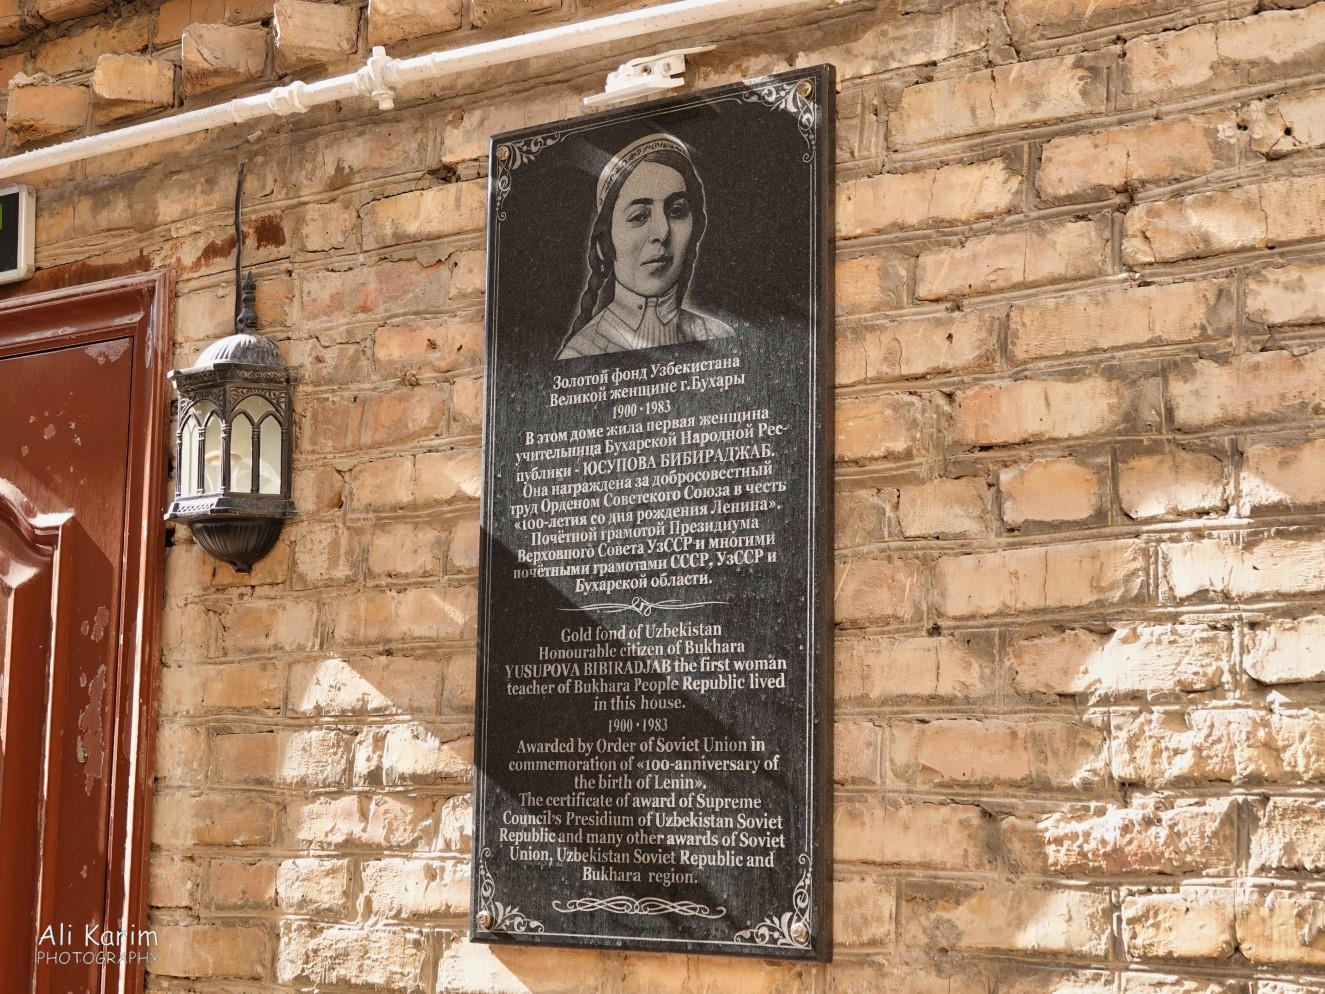 Bukhara, Oct 2019, The home of the first female teacher of Bukhara; recognized and celebrated